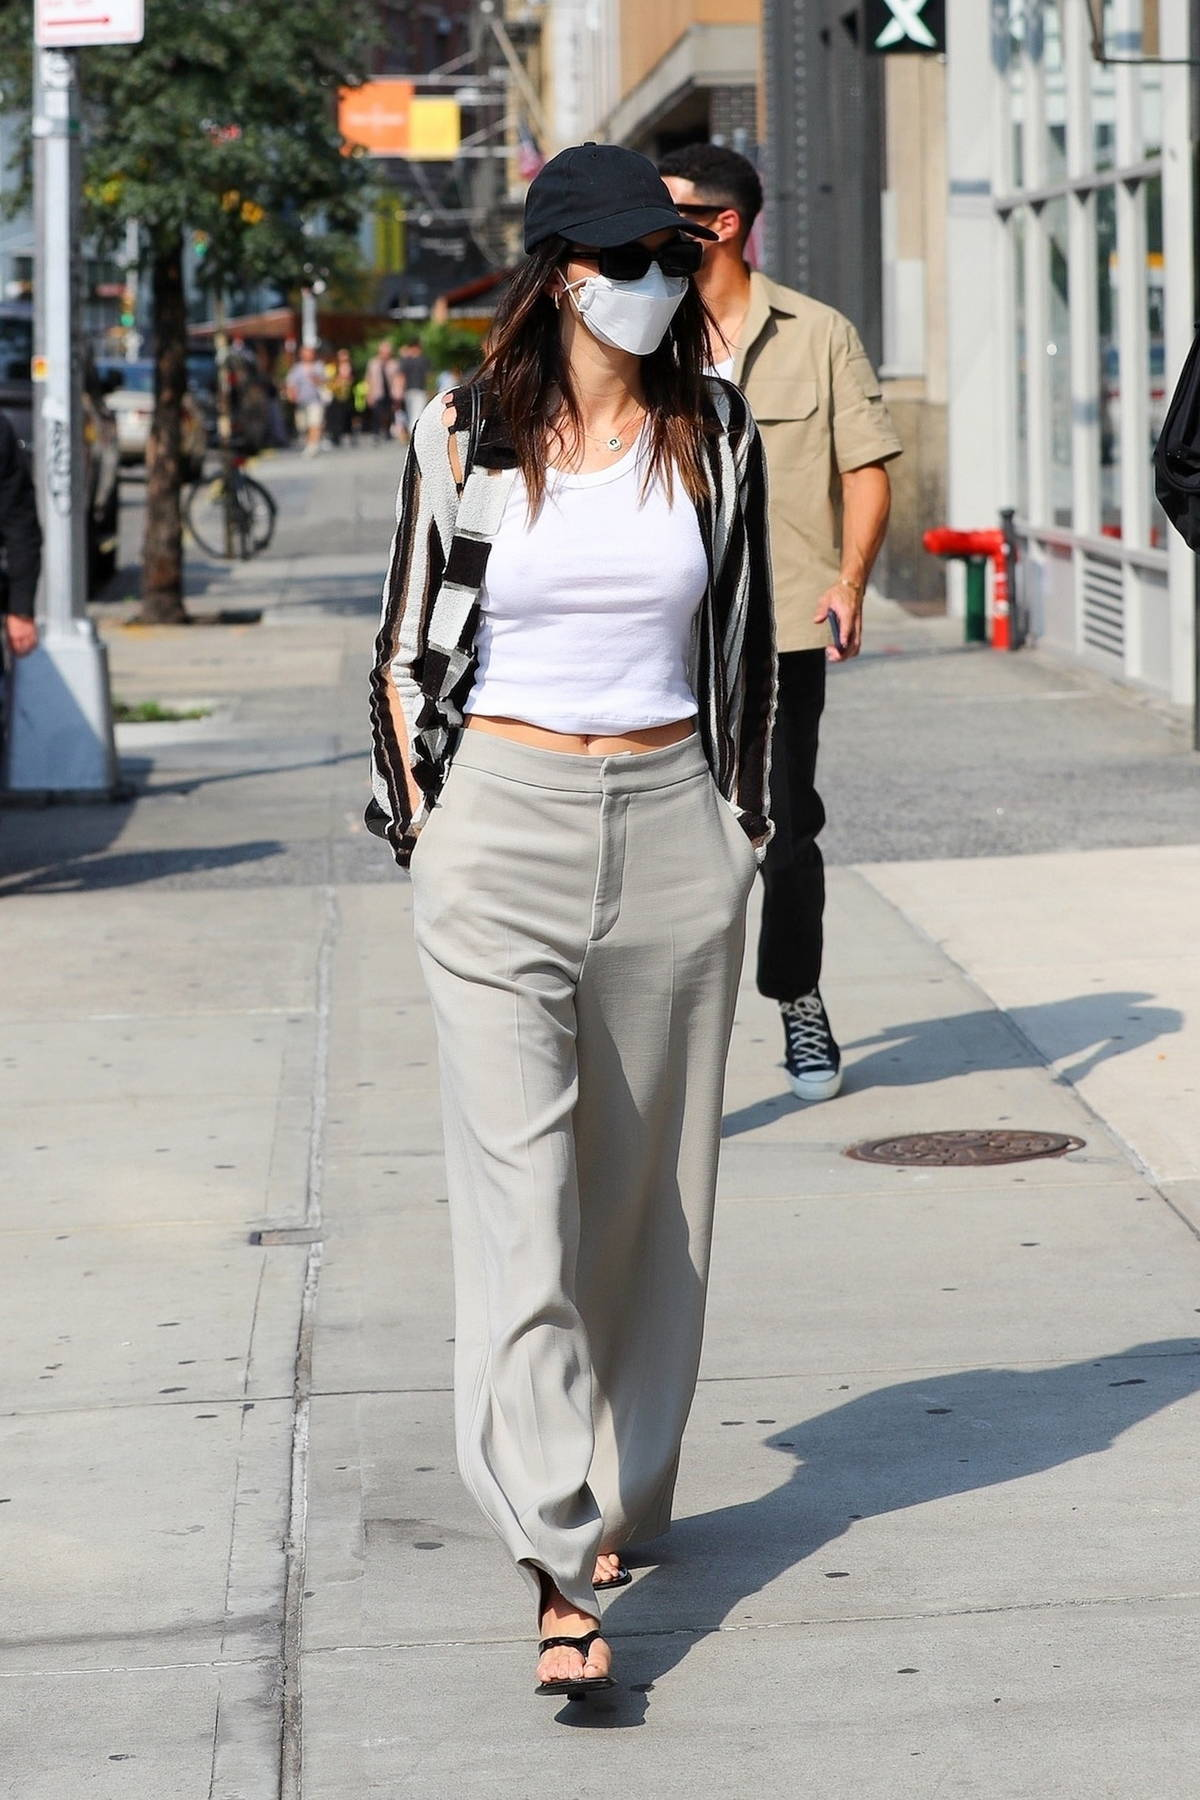 Kendall Jenner steps out for lunch with boyfriend Devin Booker and Fai Khadra in SoHo, New York City